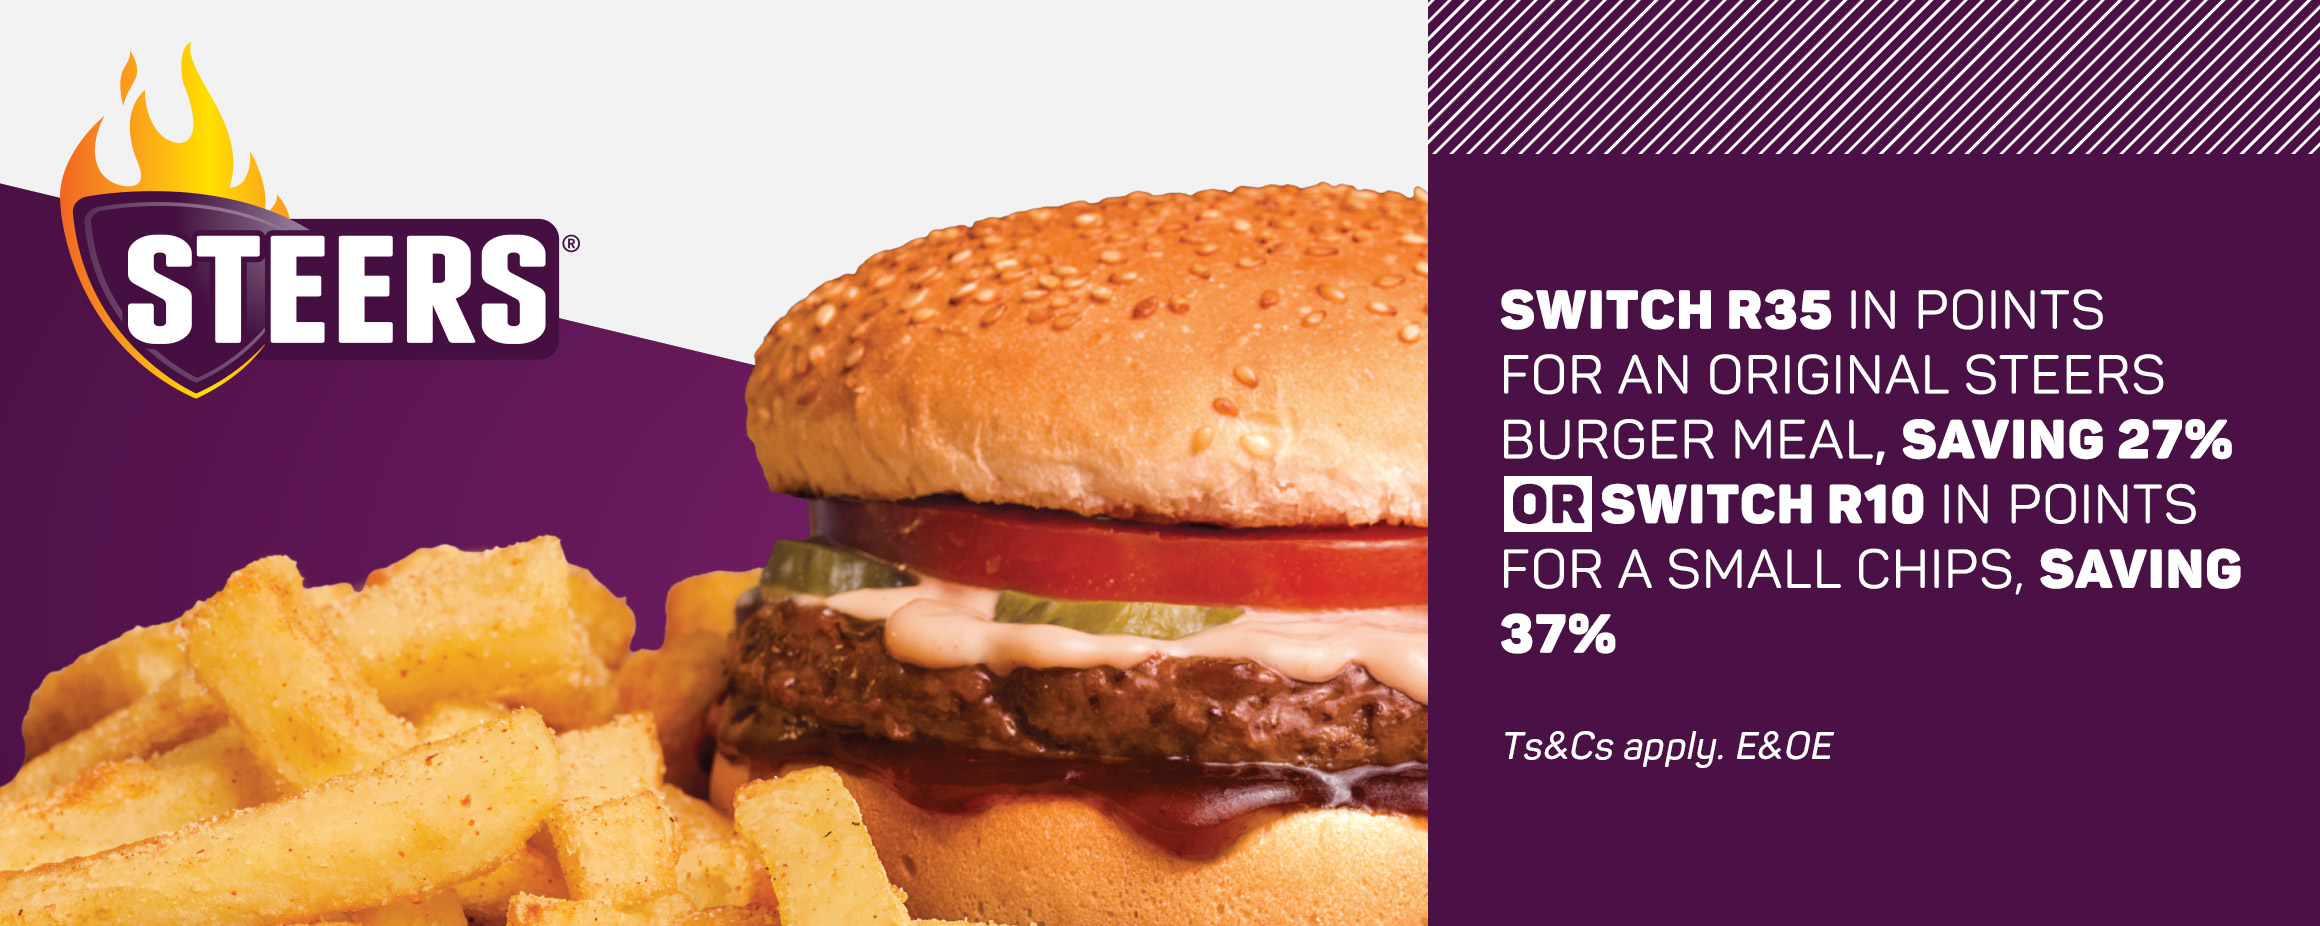 Switch R35 in points for an original steers burger meal, savings 27% or switch R10 in points for a small chips, saving R37%